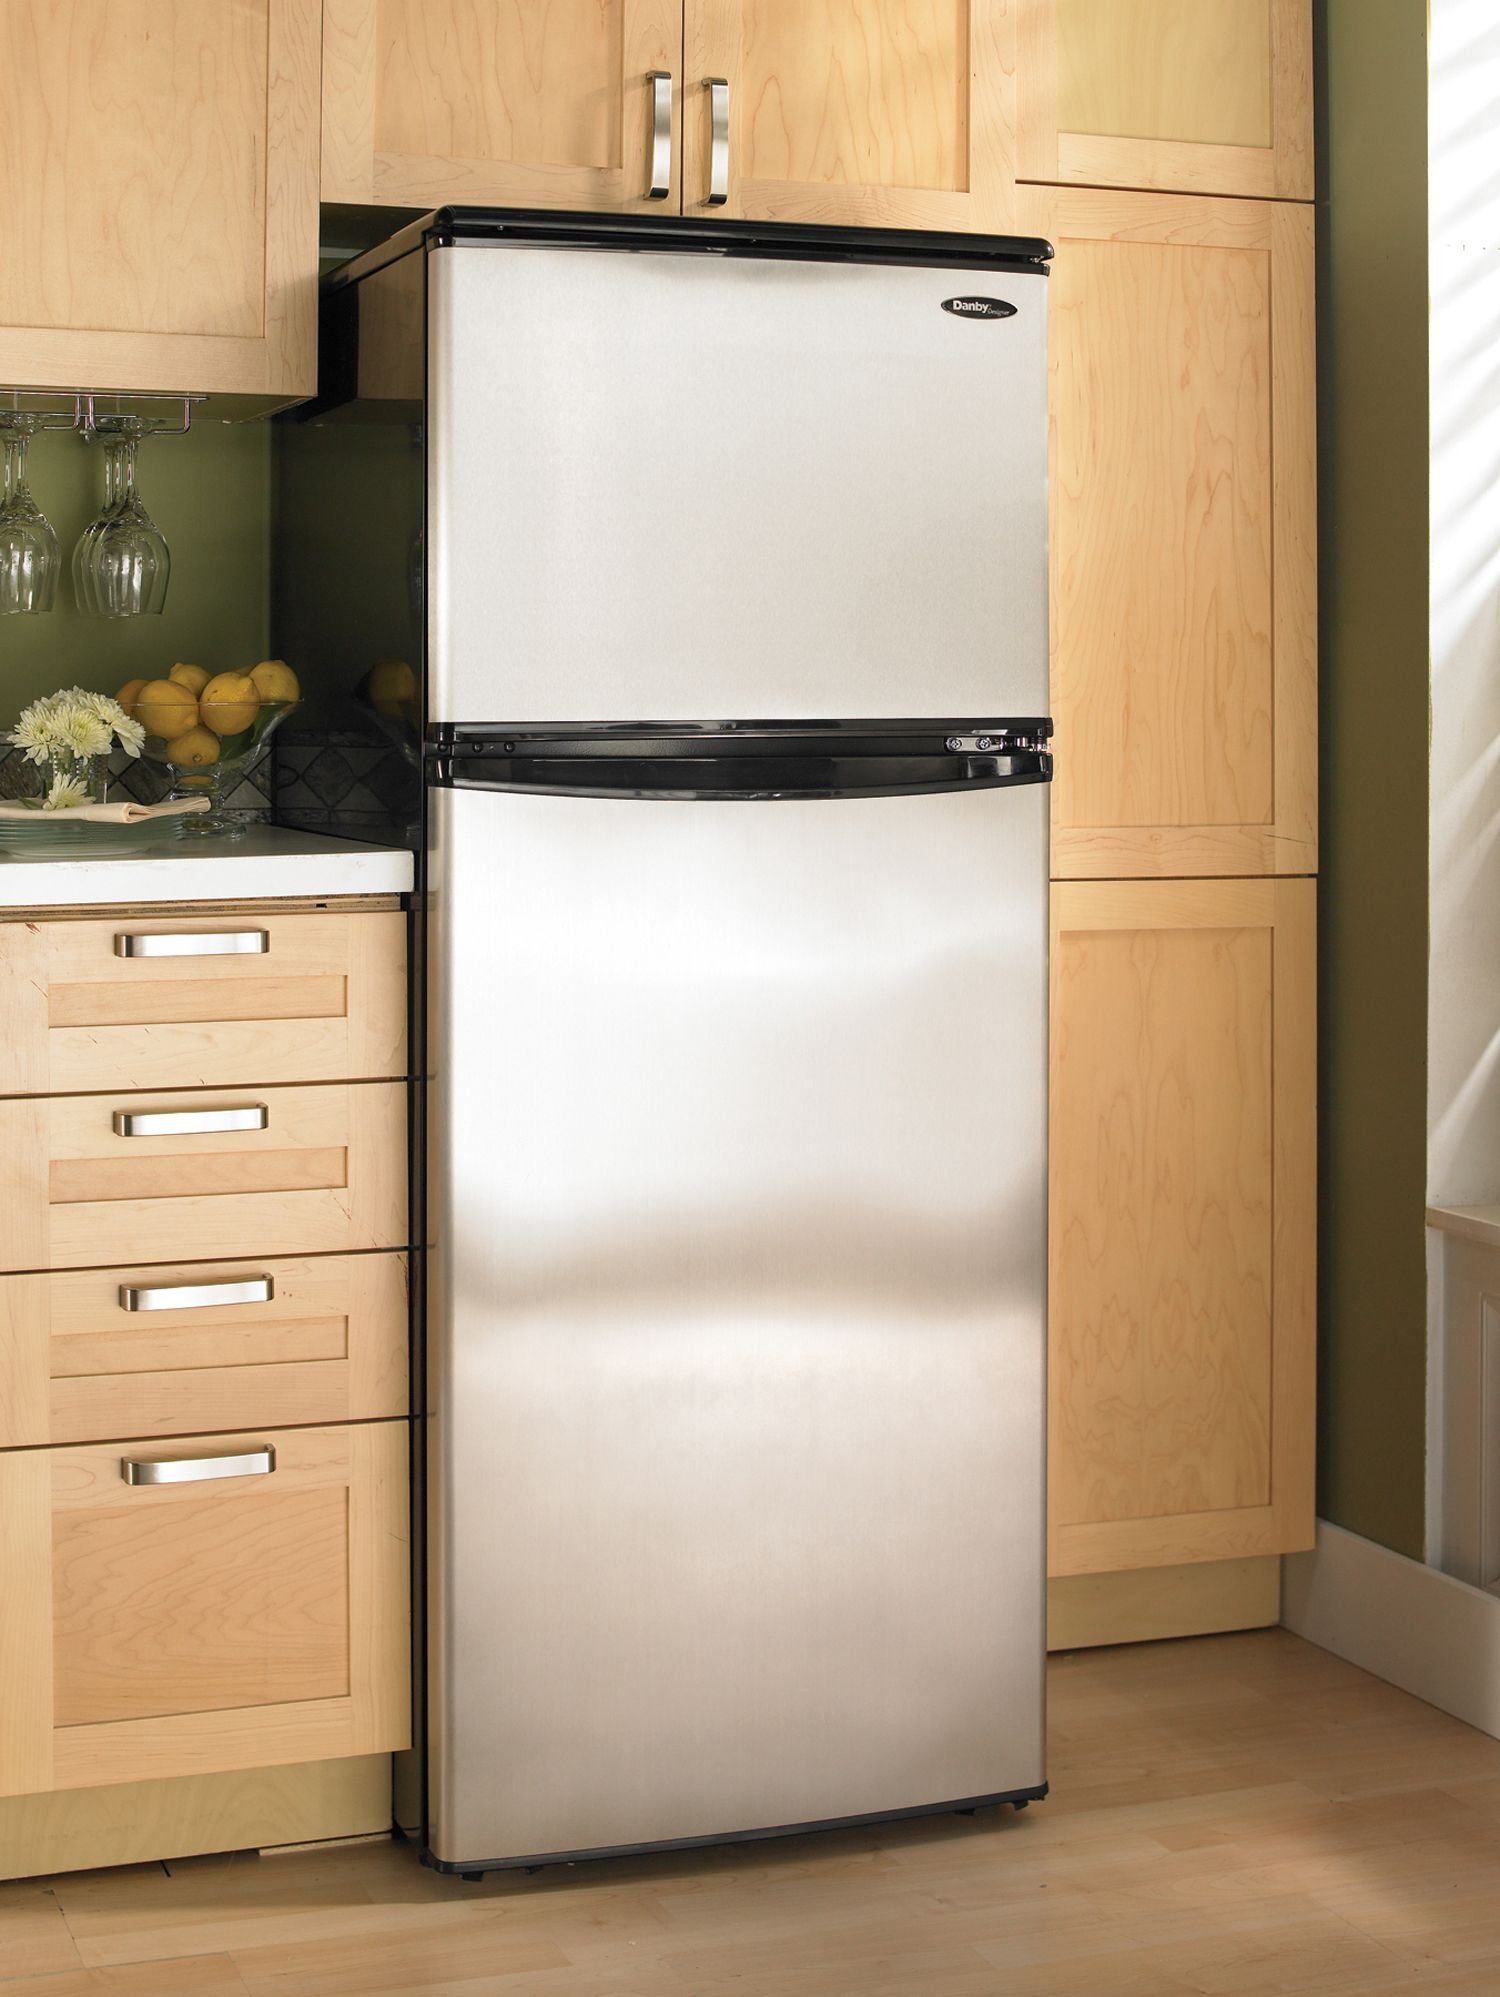 Refrigeration | Apartment kitchen, Refrigerator and Apartments